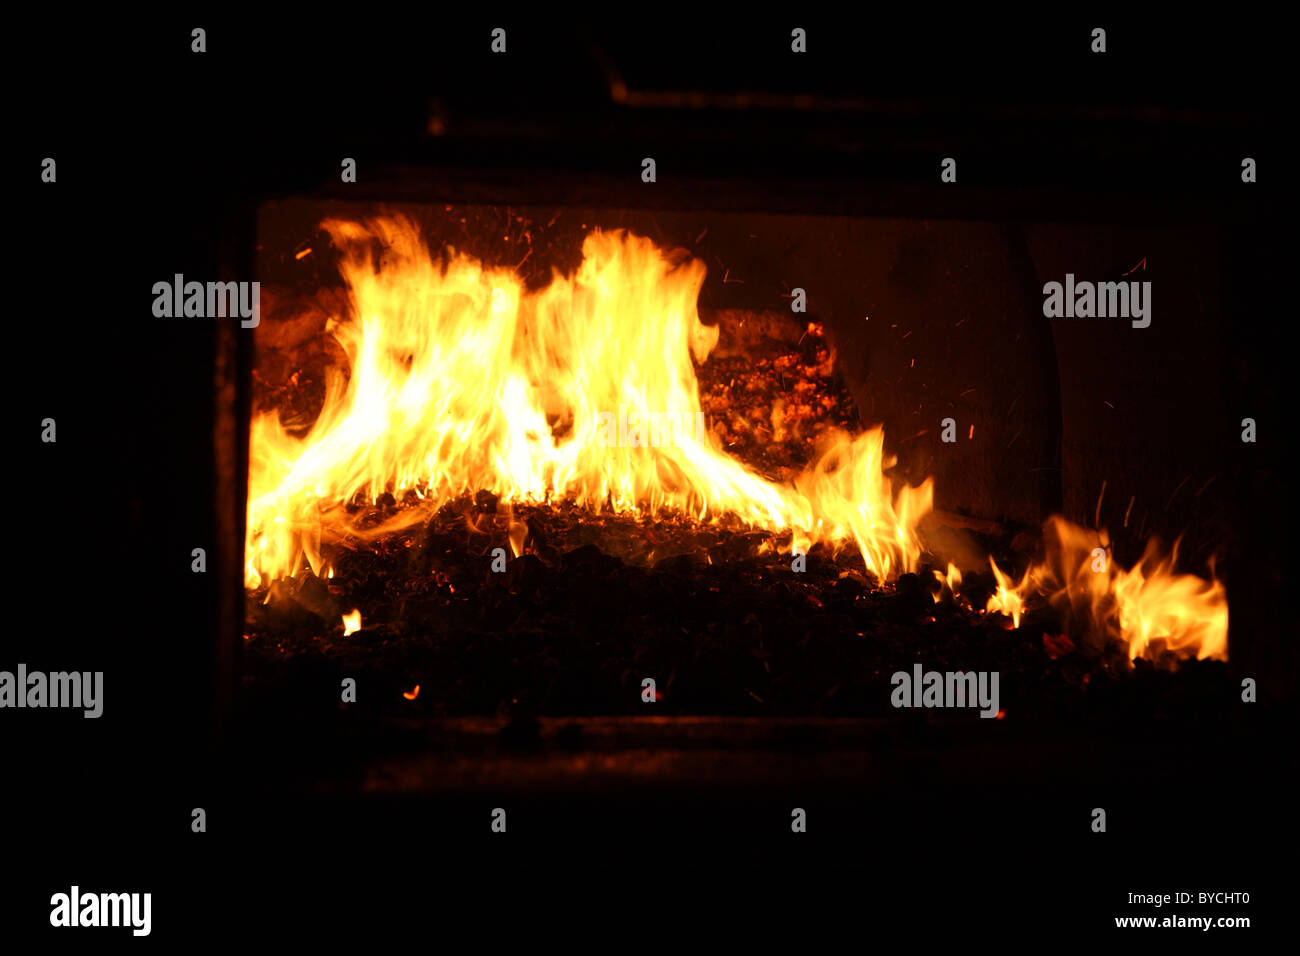 hitze und flammen im kamin feuer eines kessels stockfoto bild 34083504 alamy. Black Bedroom Furniture Sets. Home Design Ideas